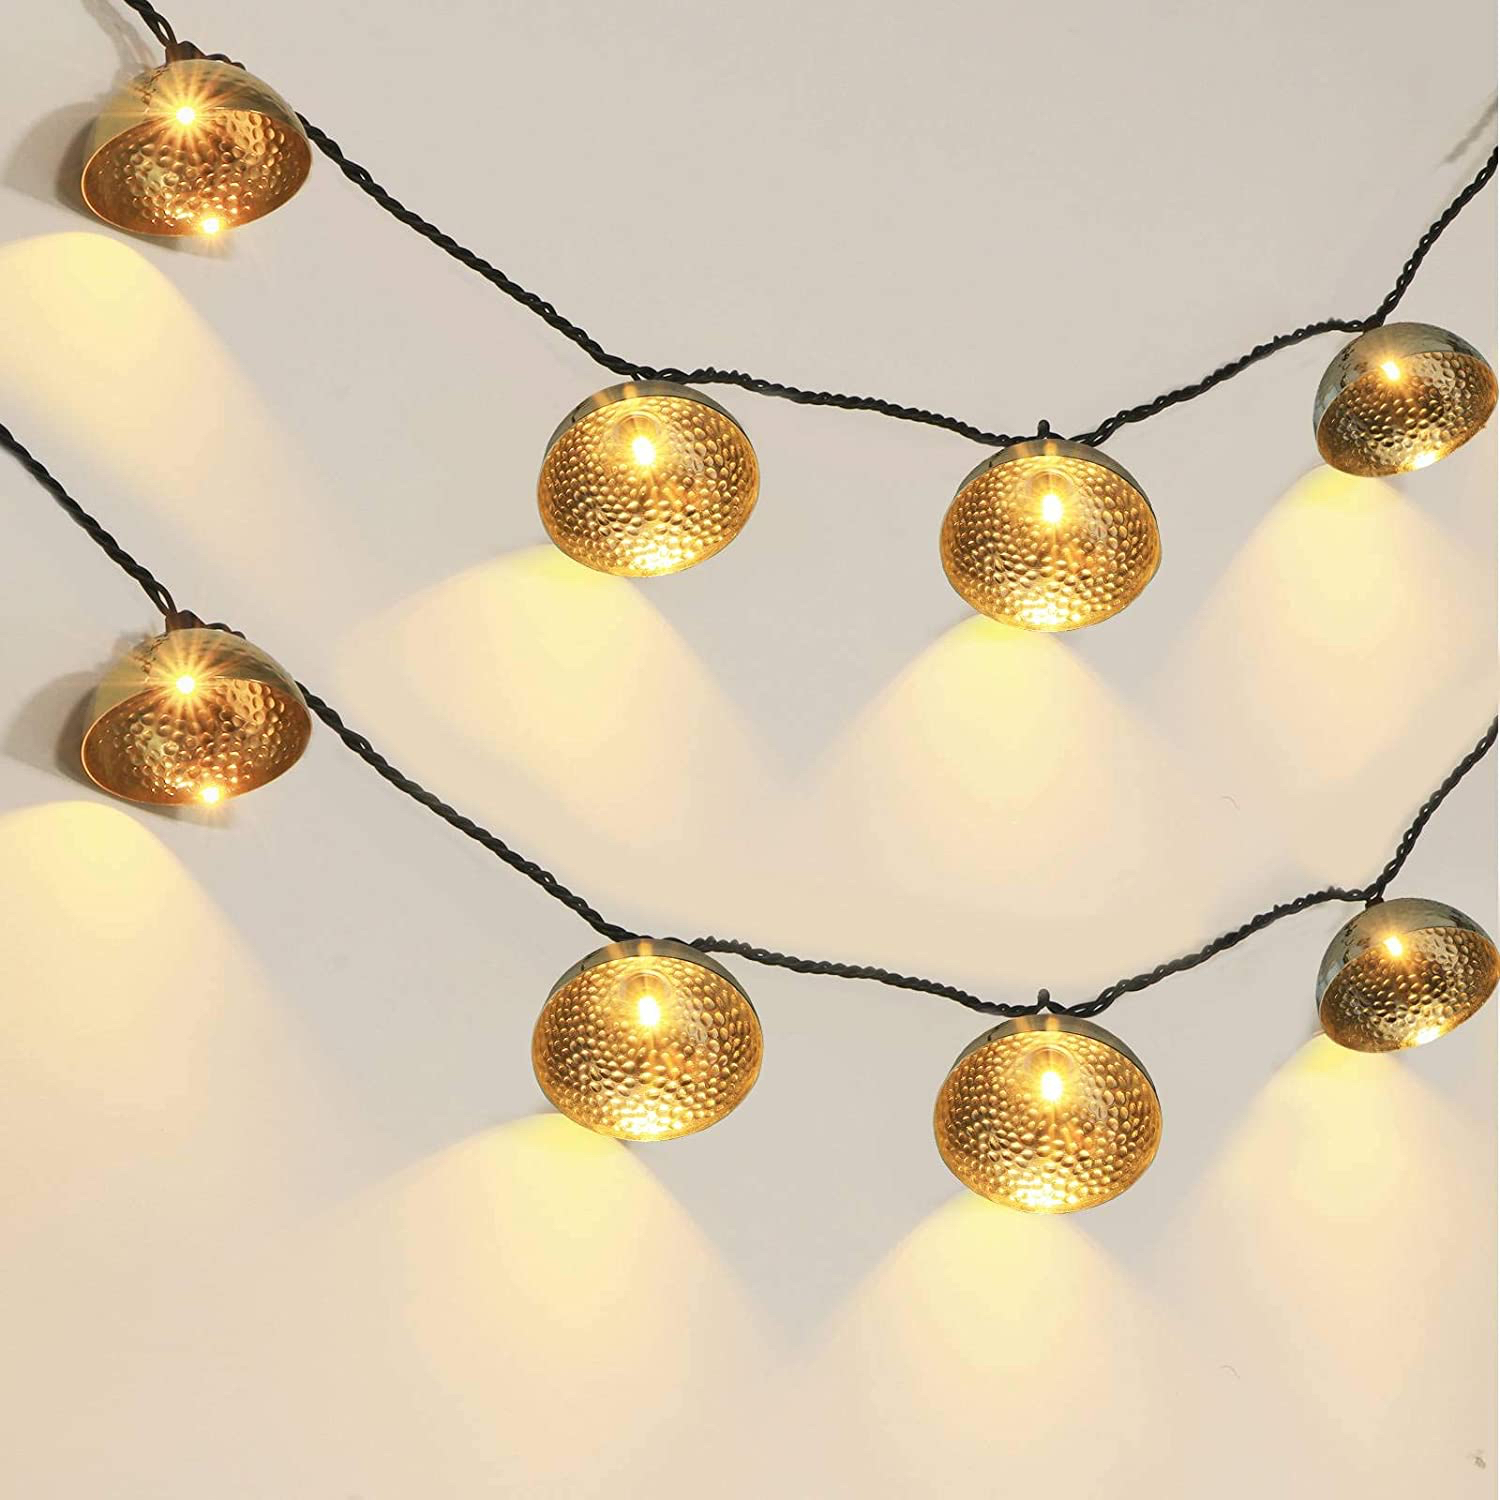 Afirst Decorative String Lights